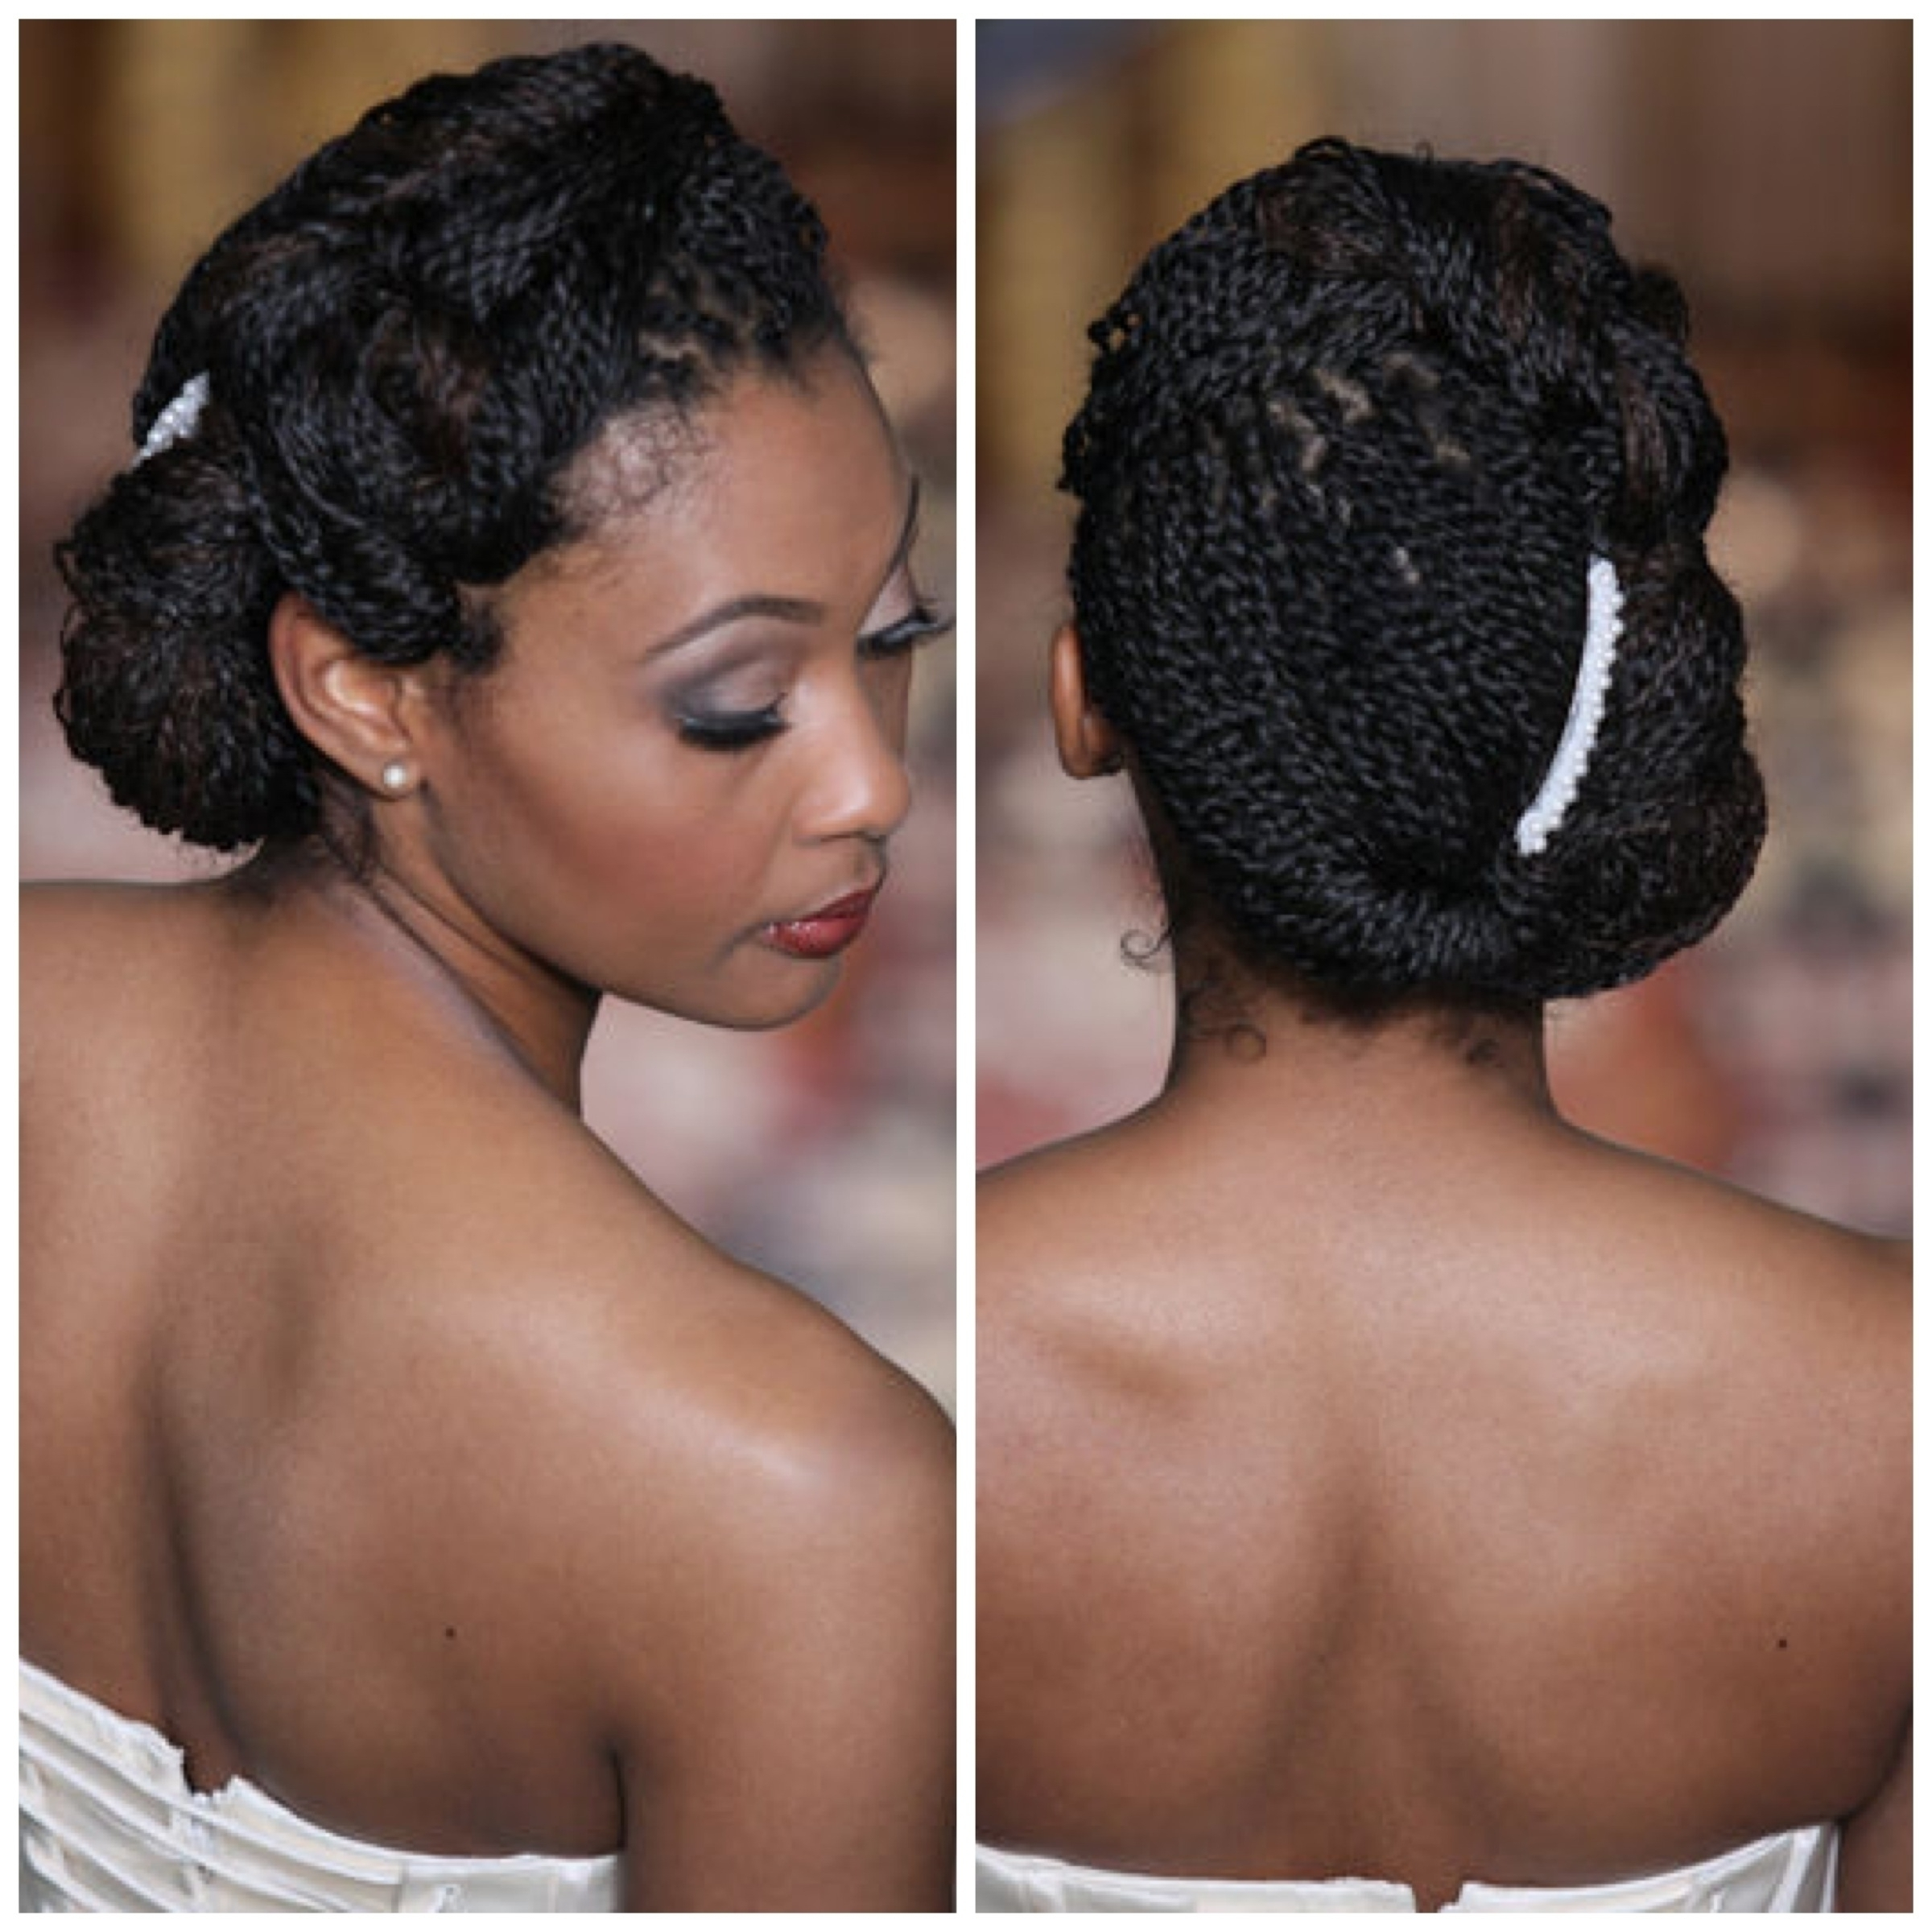 Captivating Braided Updo Hairstyles Black Hair With Additional Updo Intended For Braided Updo Hairstyles For Black Hair (View 10 of 15)